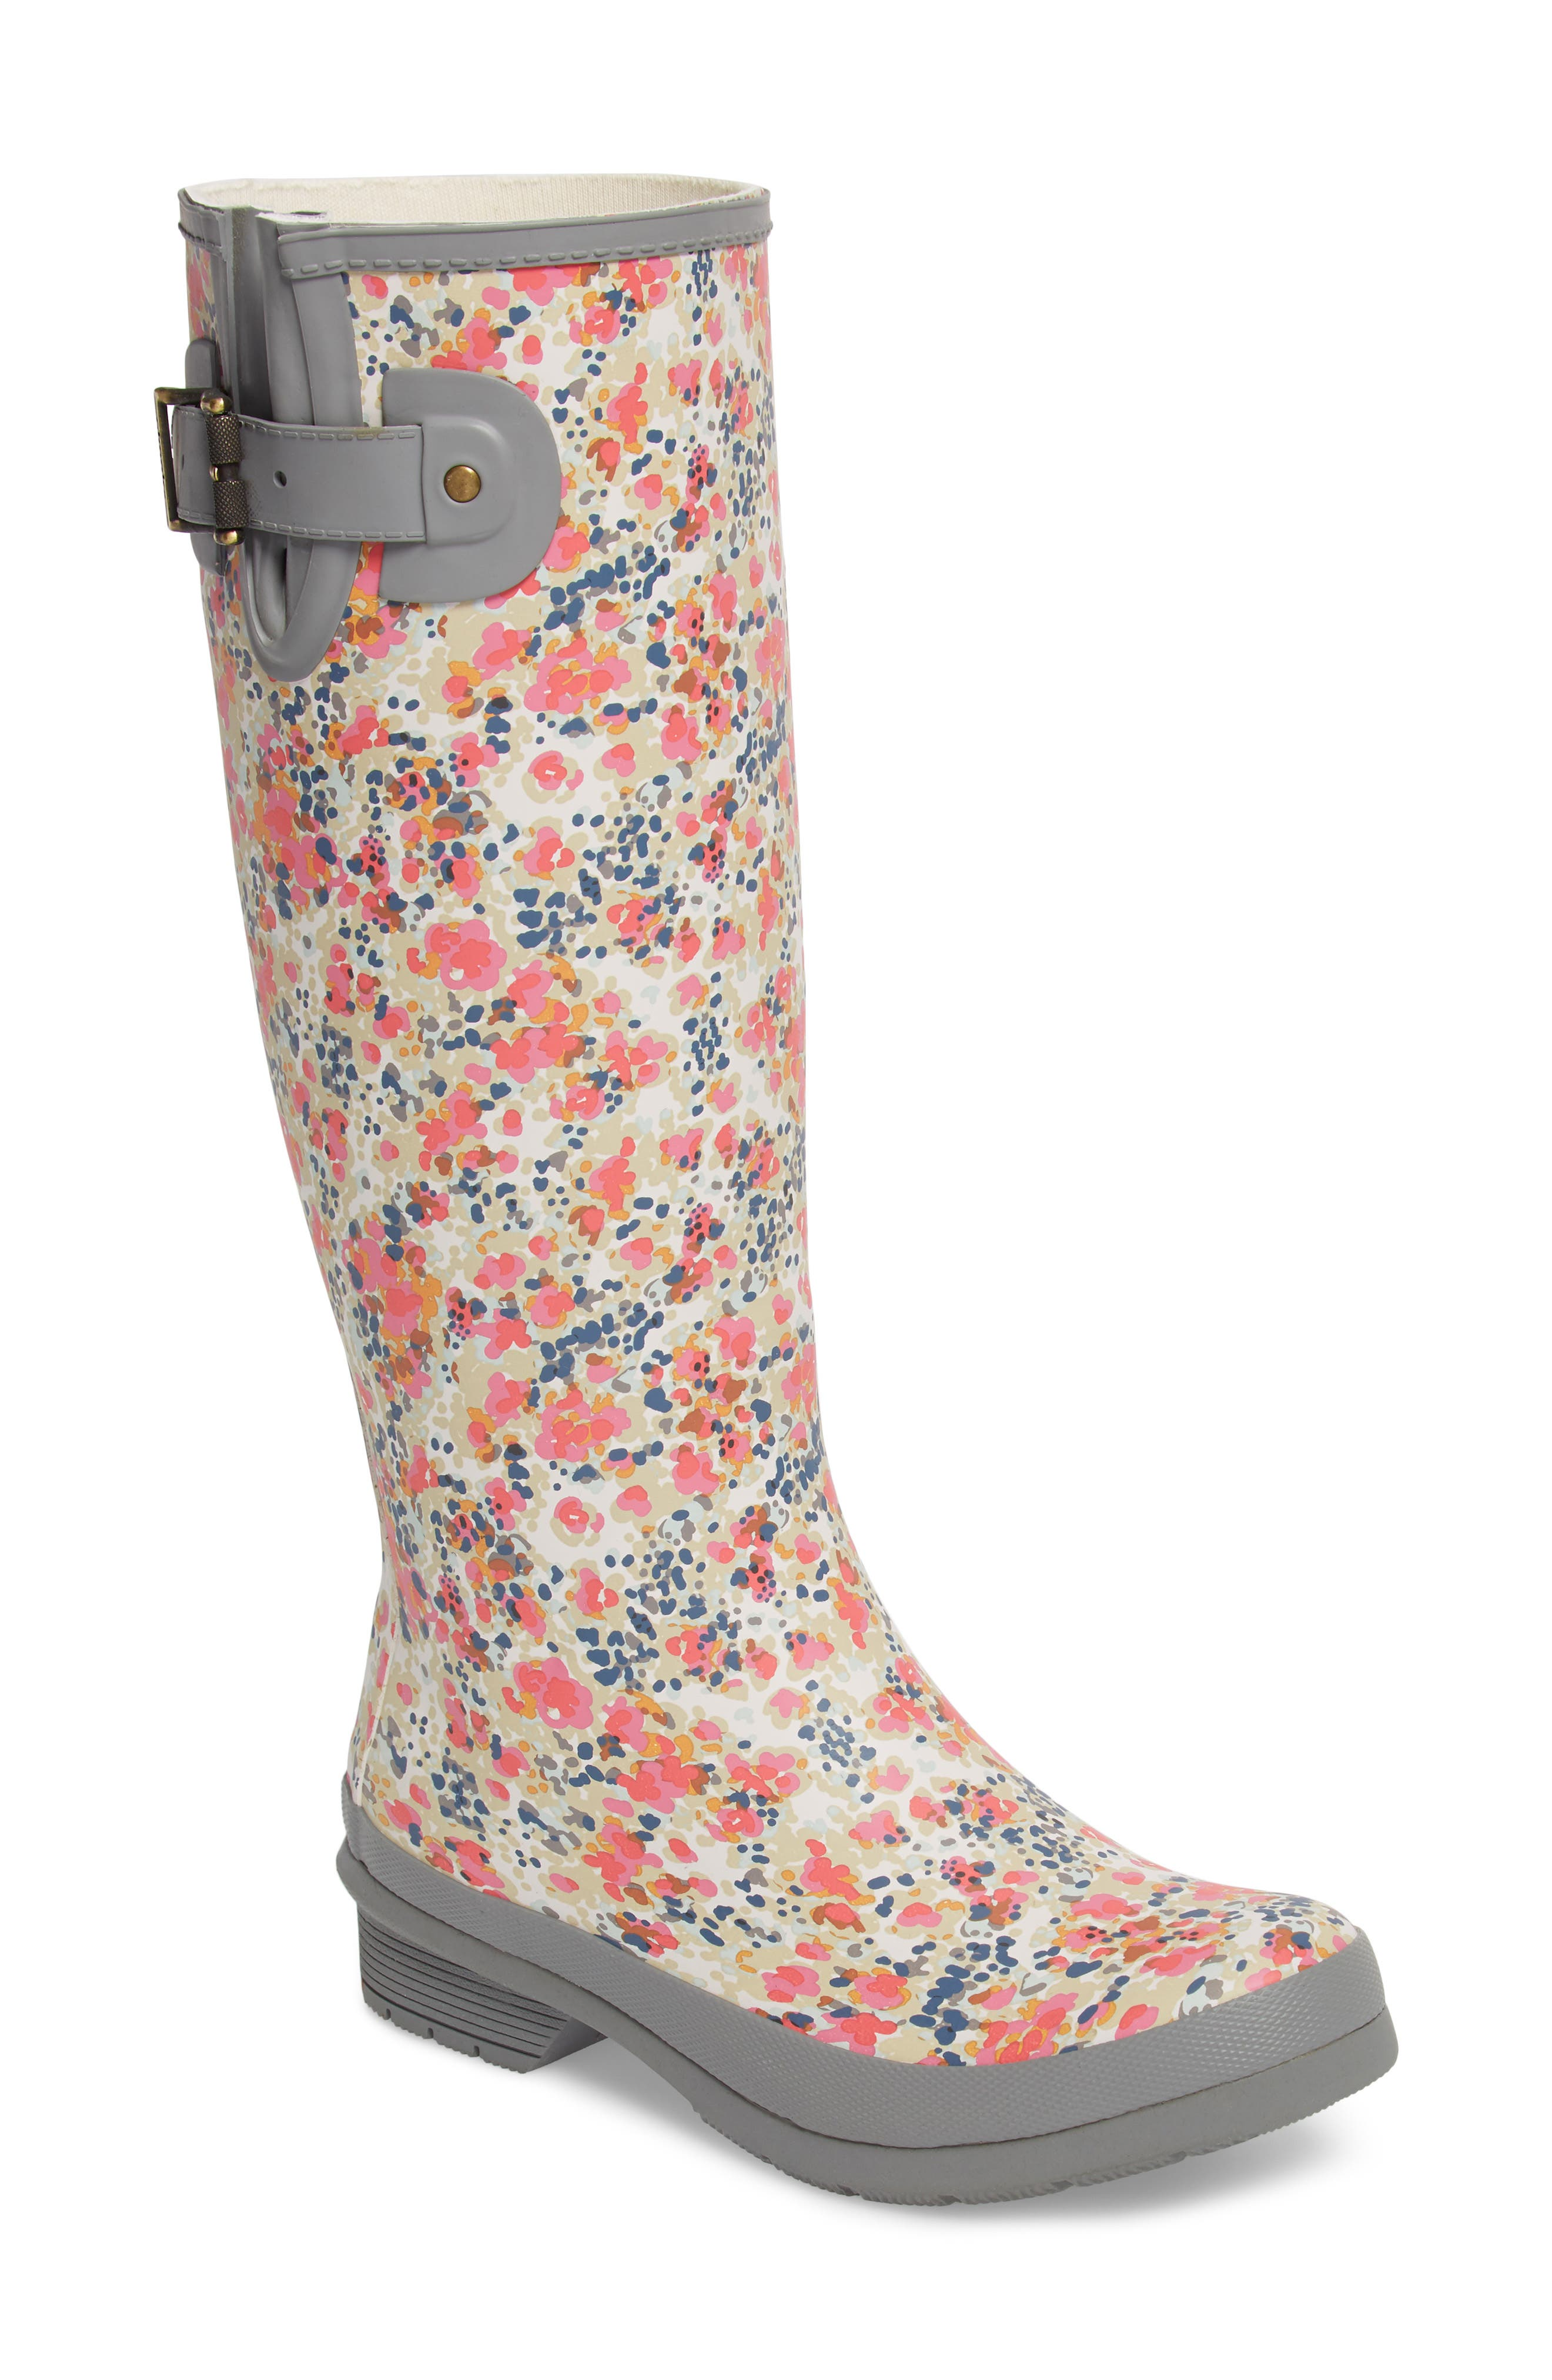 Julia Floral Waterproof Rain Boot,                         Main,                         color, Gray